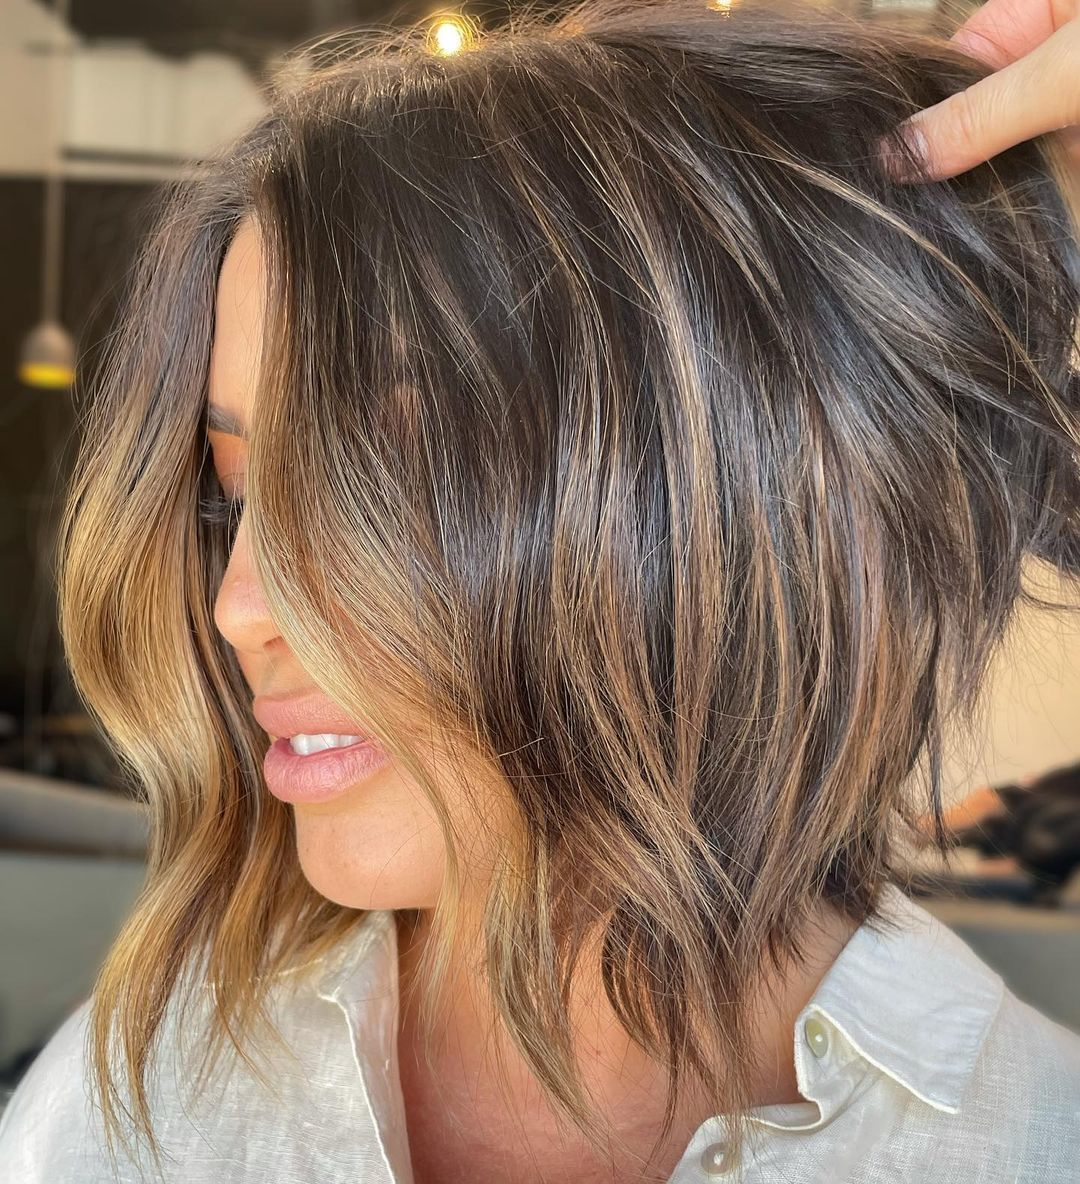 50 Awesome Long Layered Hair Ideas For 2021 images 1